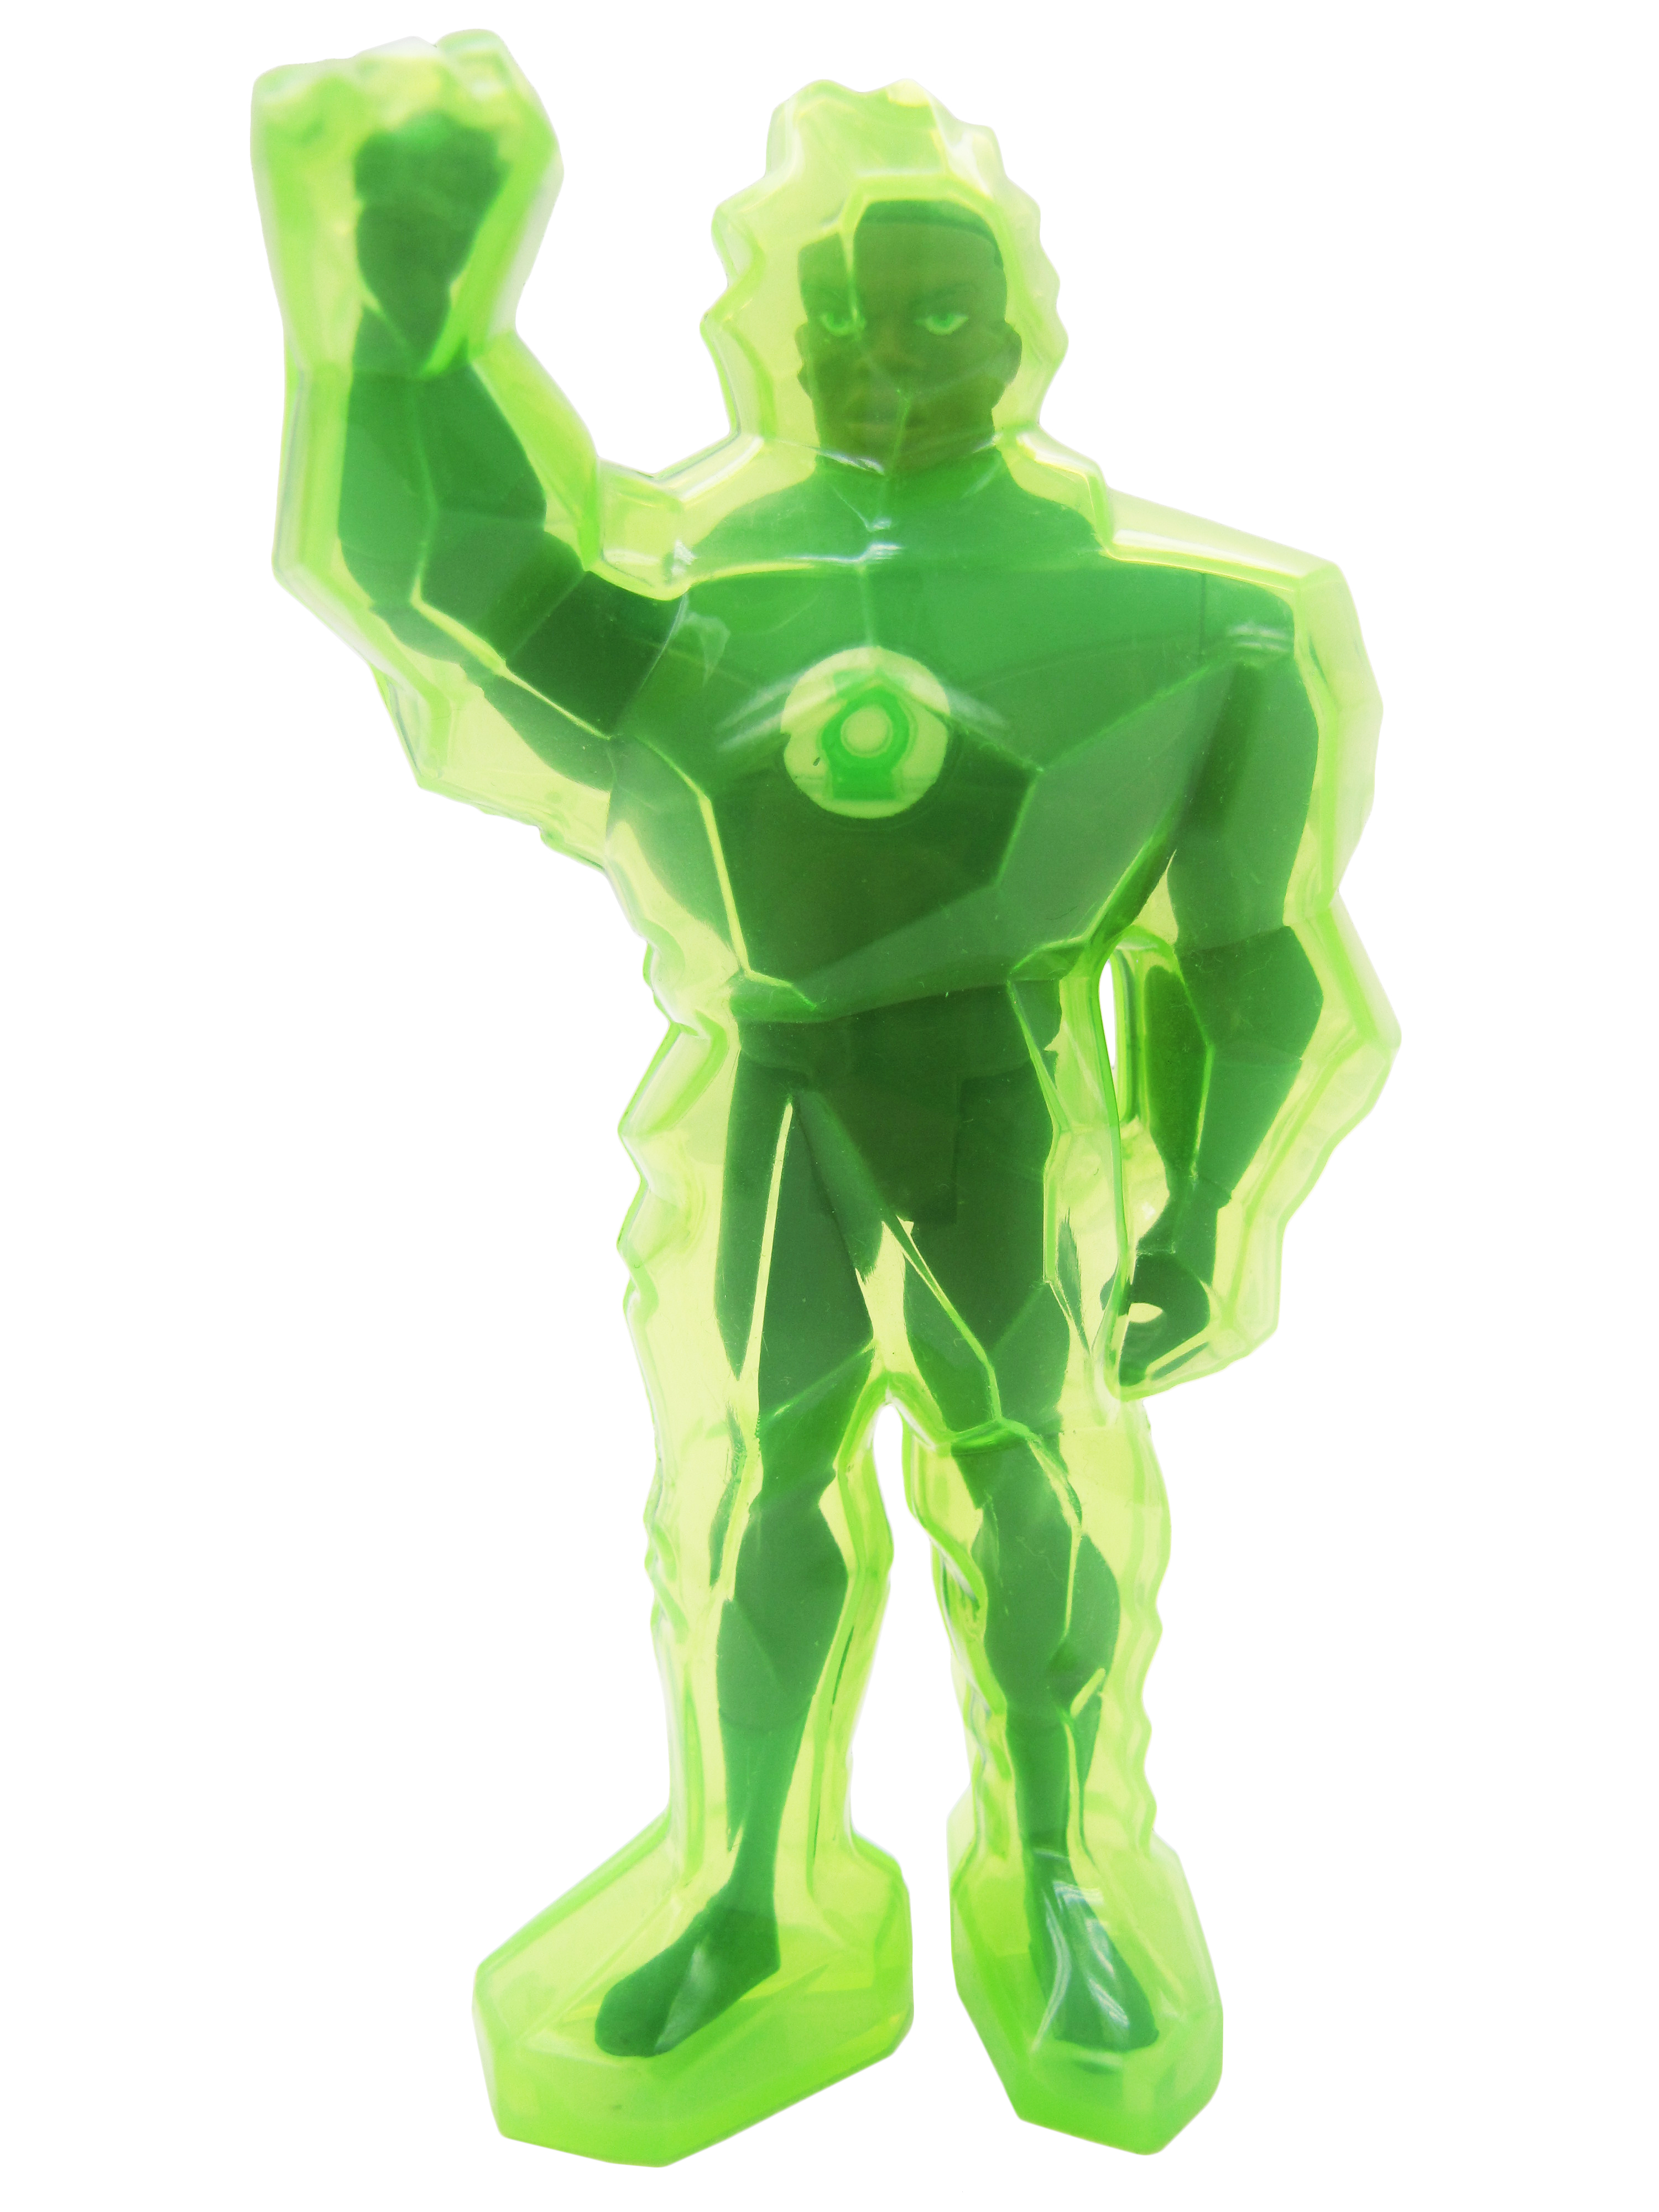 2003 Justice League Unlimited ATTACK ARMOR GREEN LANTERN Mint